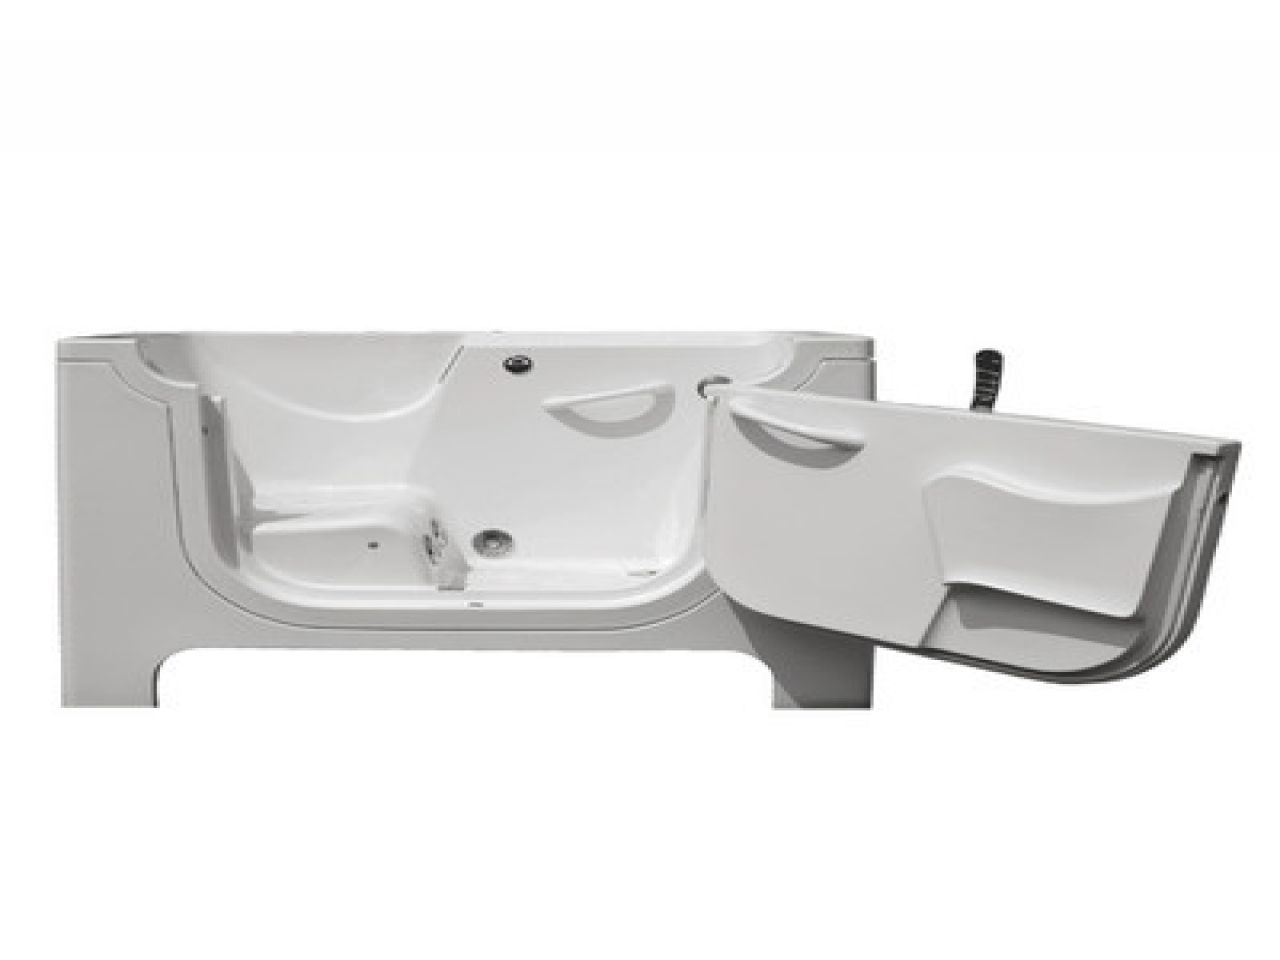 Home Depot Walk in Tubs for Bath Replacements or New Construction ...